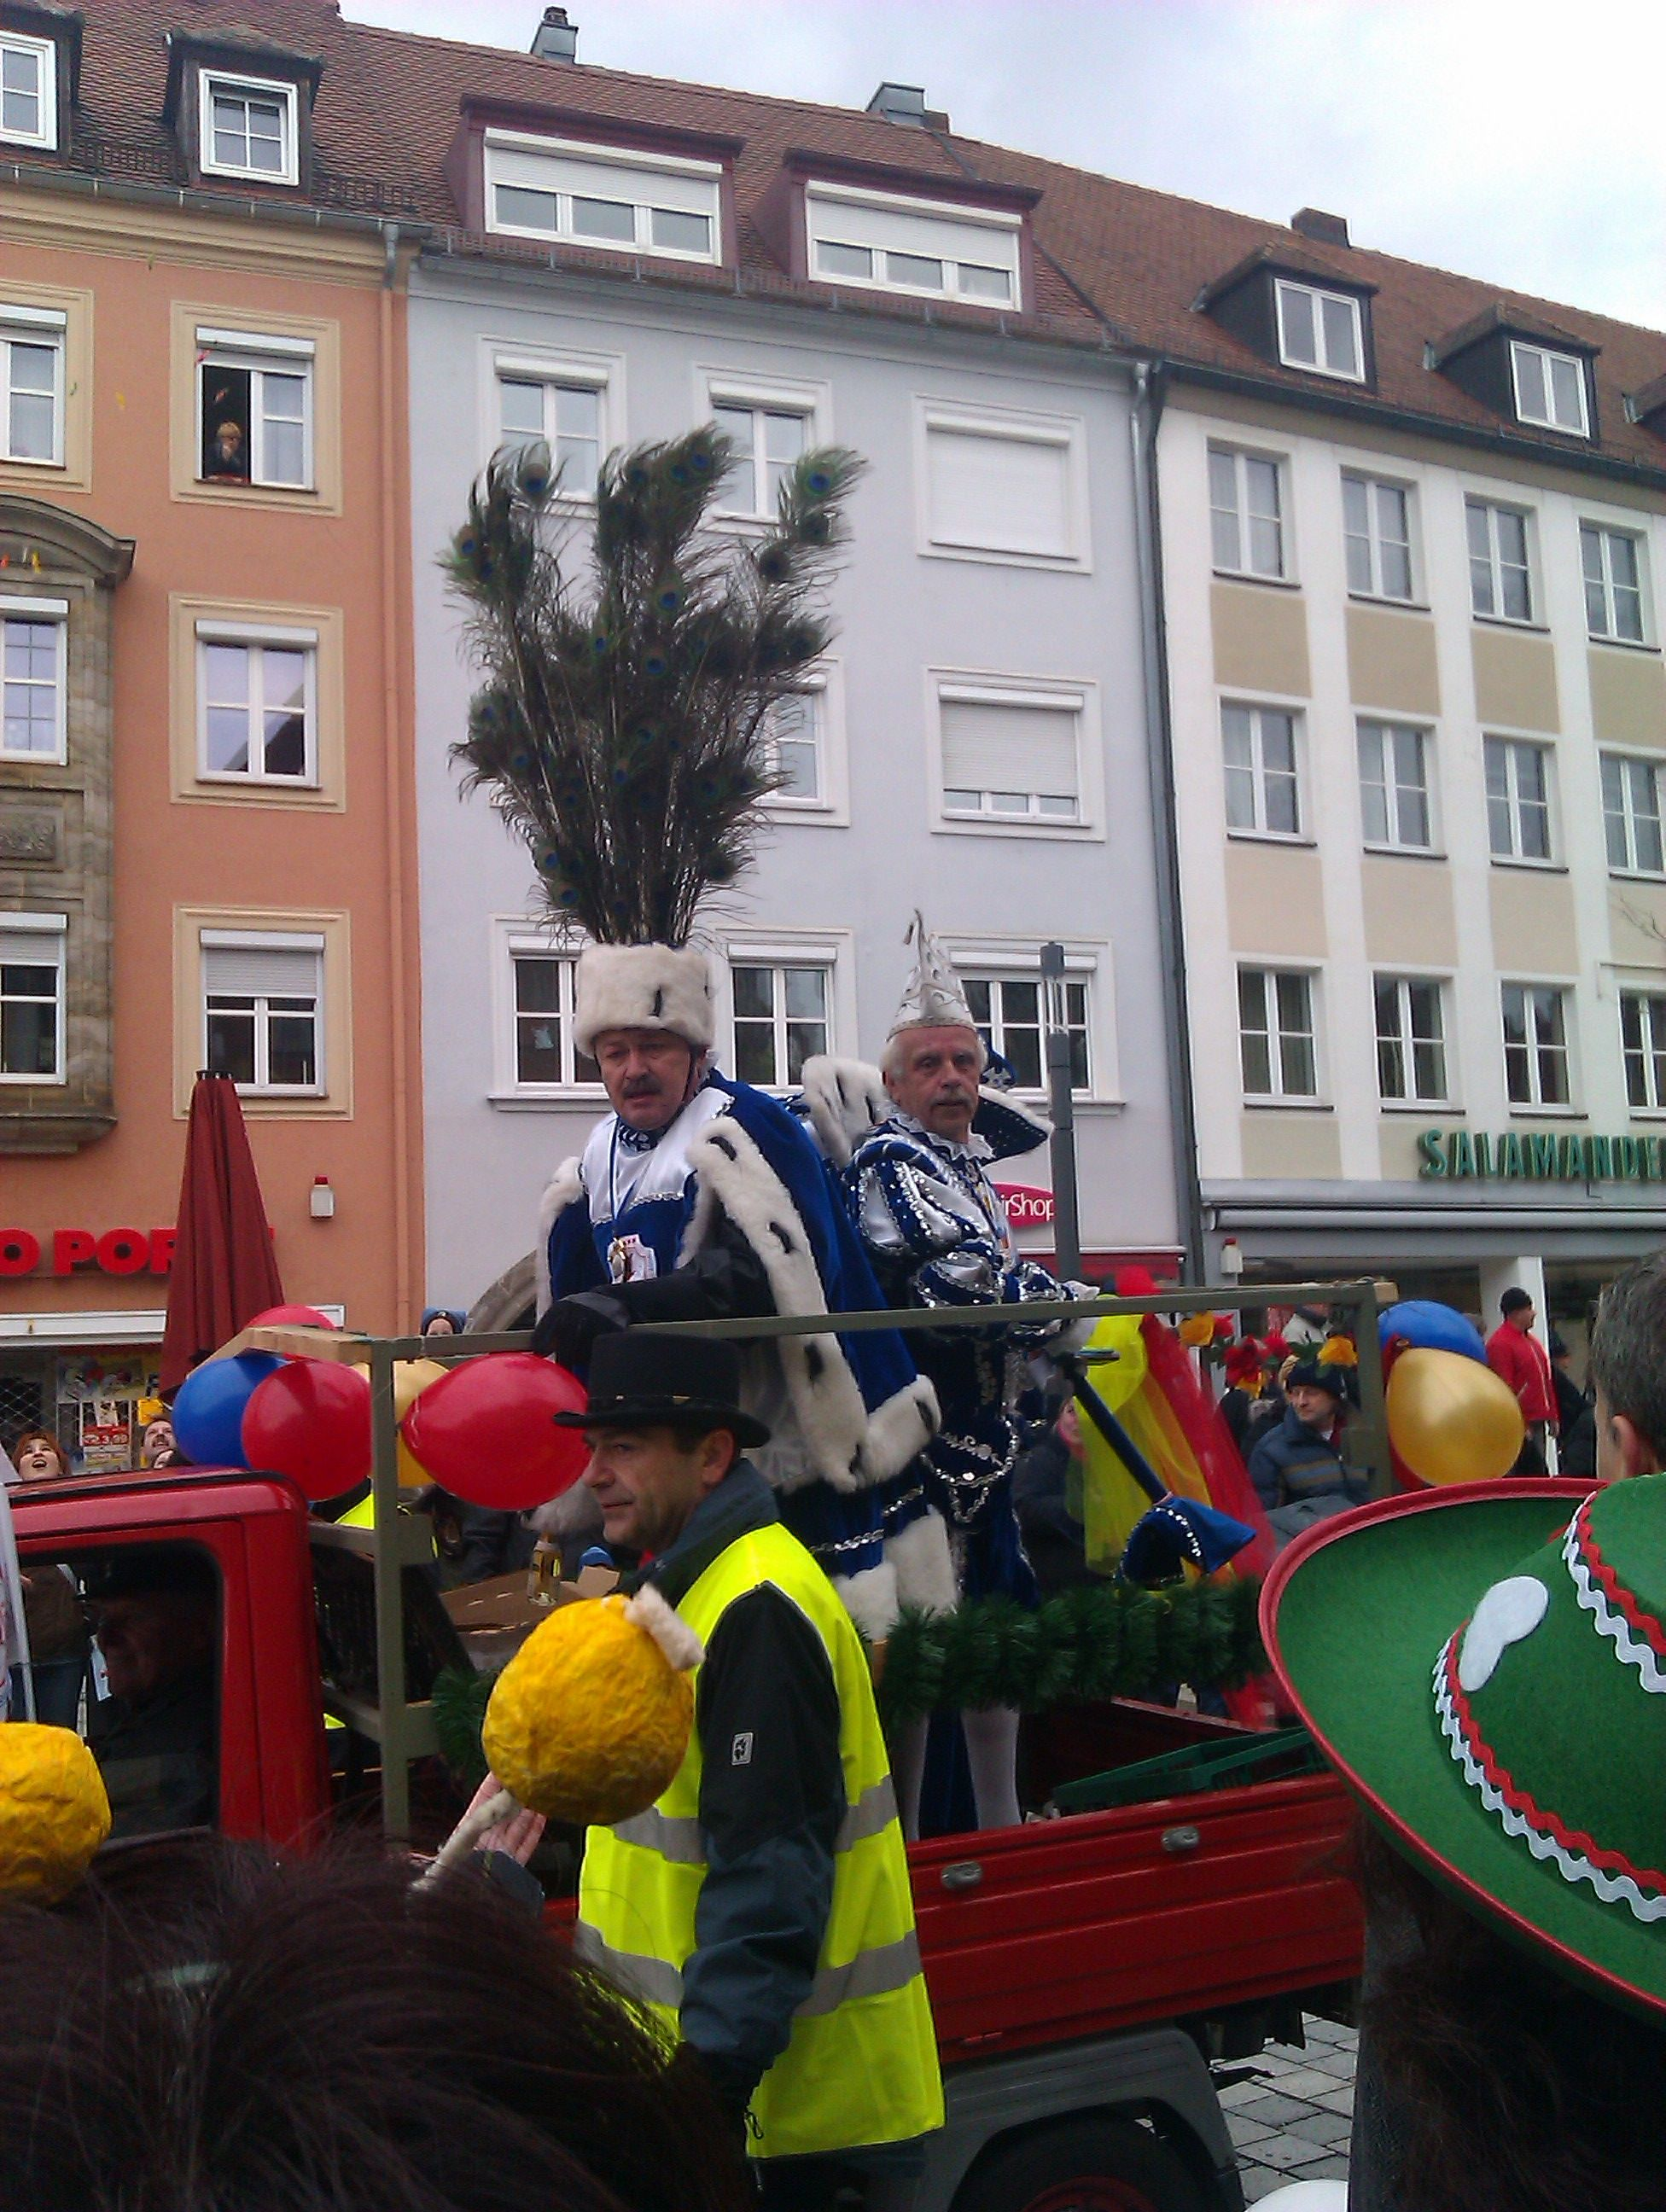 Fasching parade in Bayreuth,Germany. Feb 2012